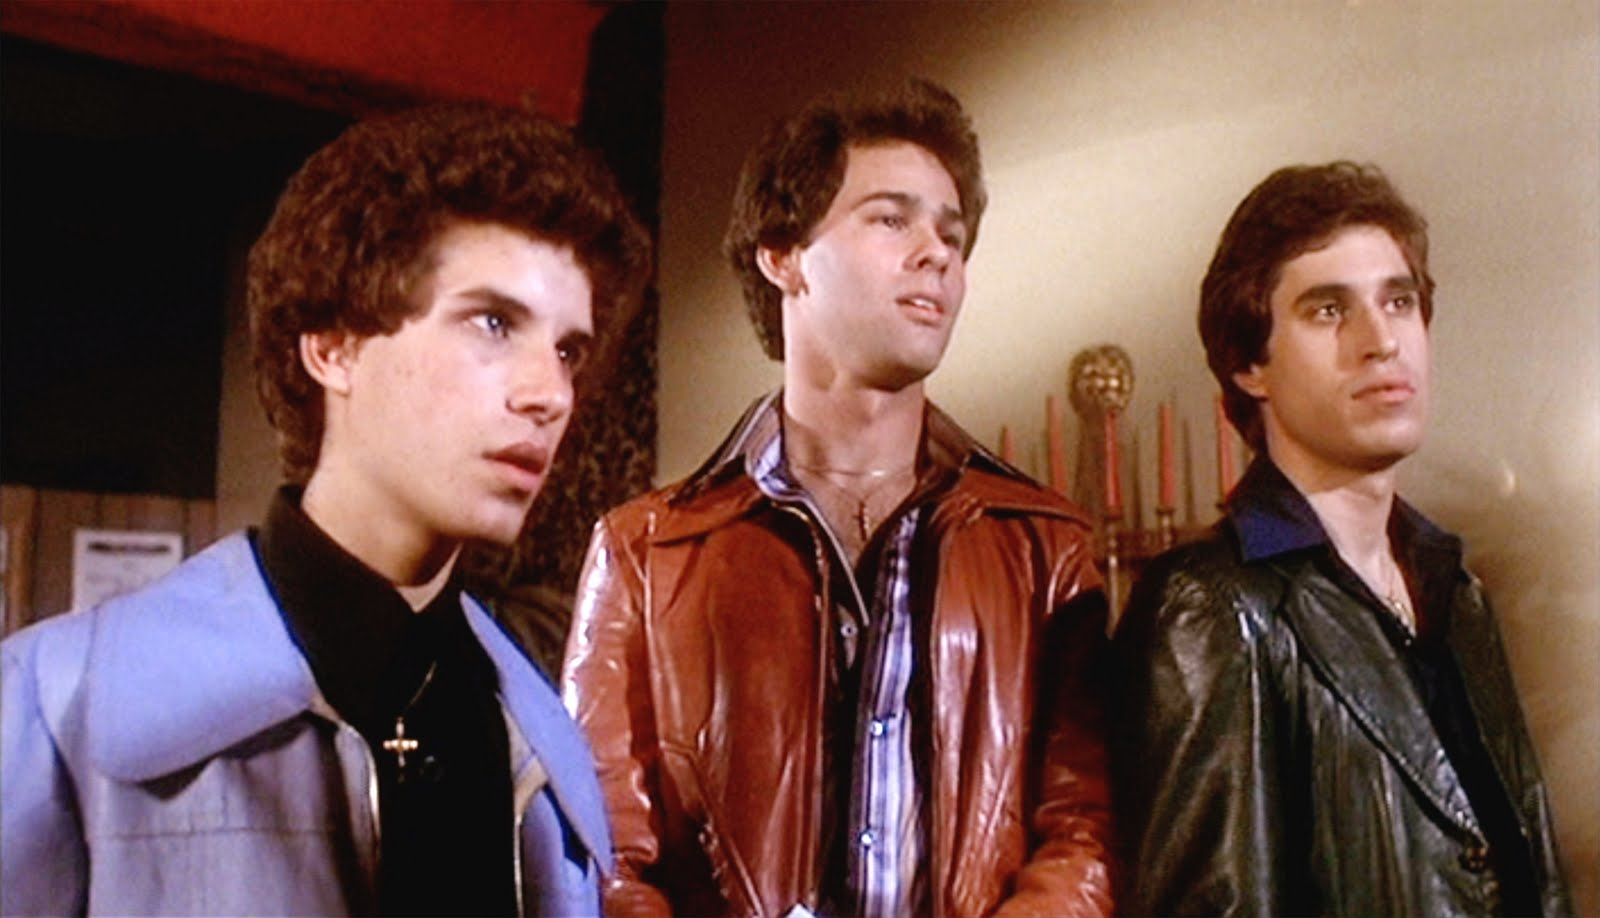 Image result for tony manero joey bobby C walking down street